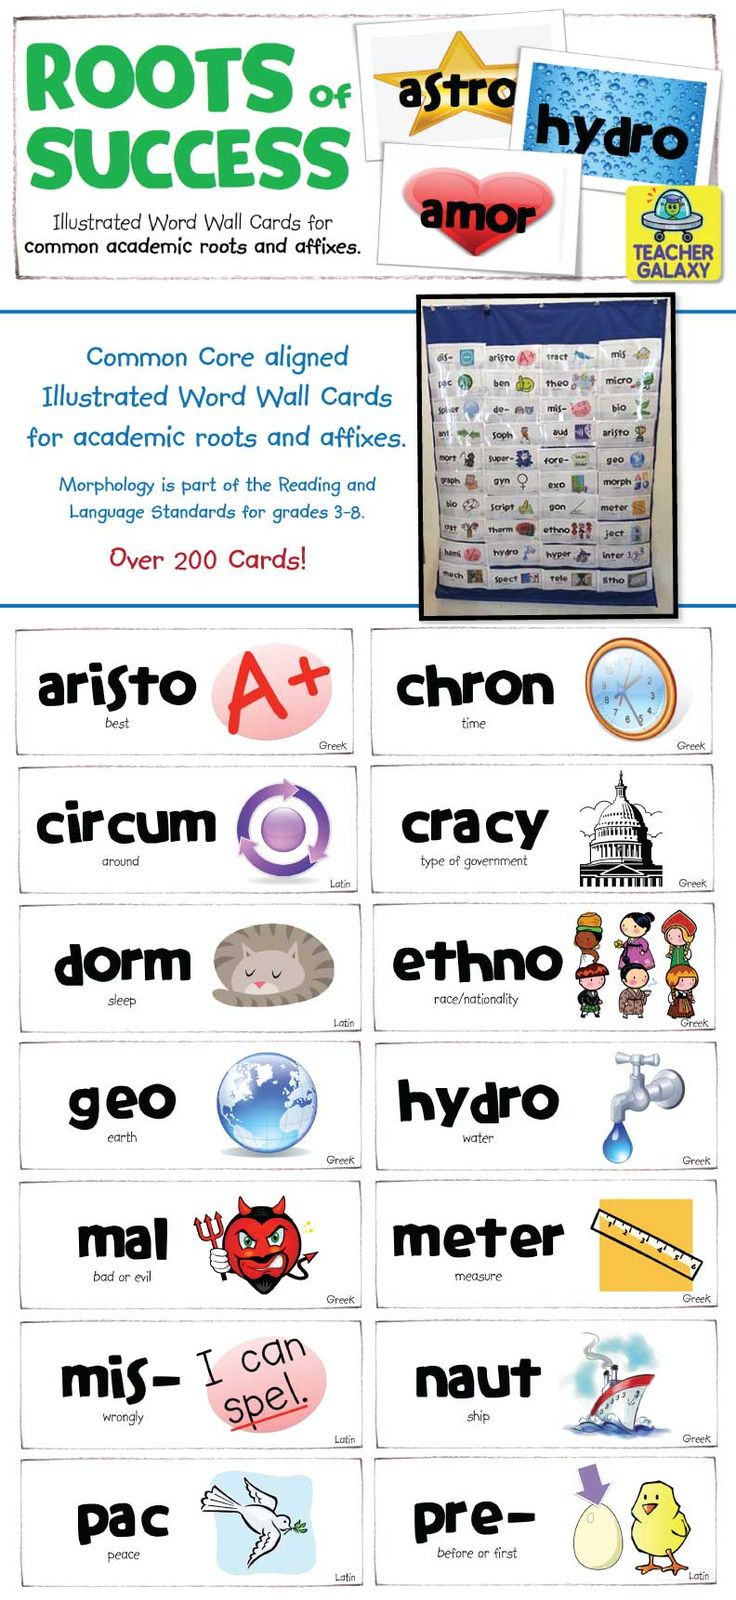 The Common Core Standards for grades 3 through 8 require students to be able to use knowledge of roots and affixes to determine the meaning of unknown words. This easy to use collection of colorfully illustrated word wall cards will help them do just that!